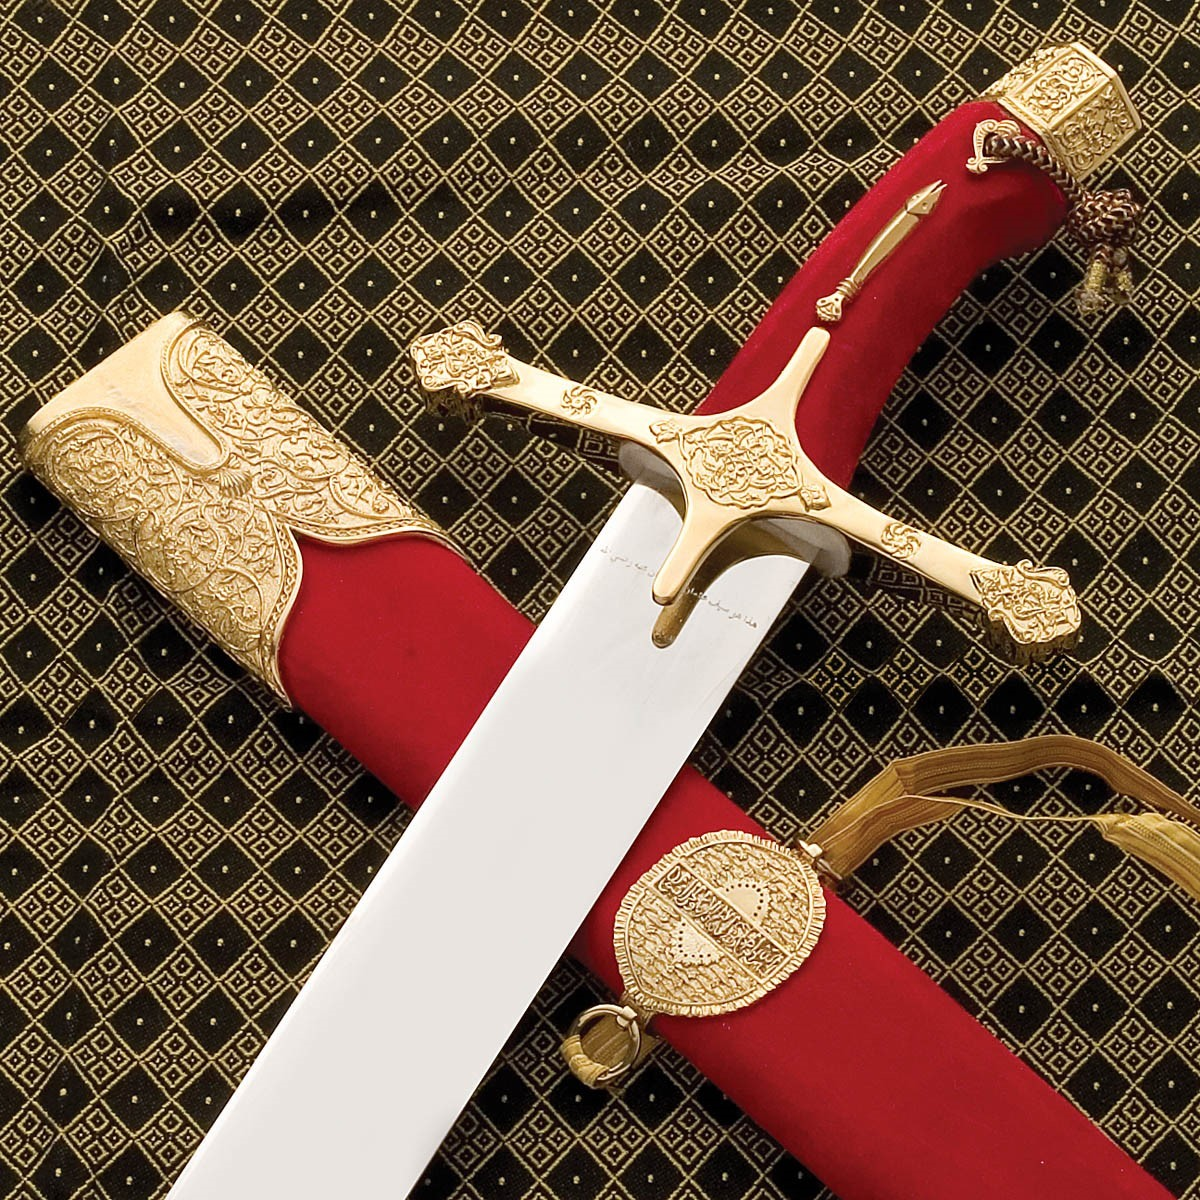 Picture of Sword of 'Uthman ibn 'Affan